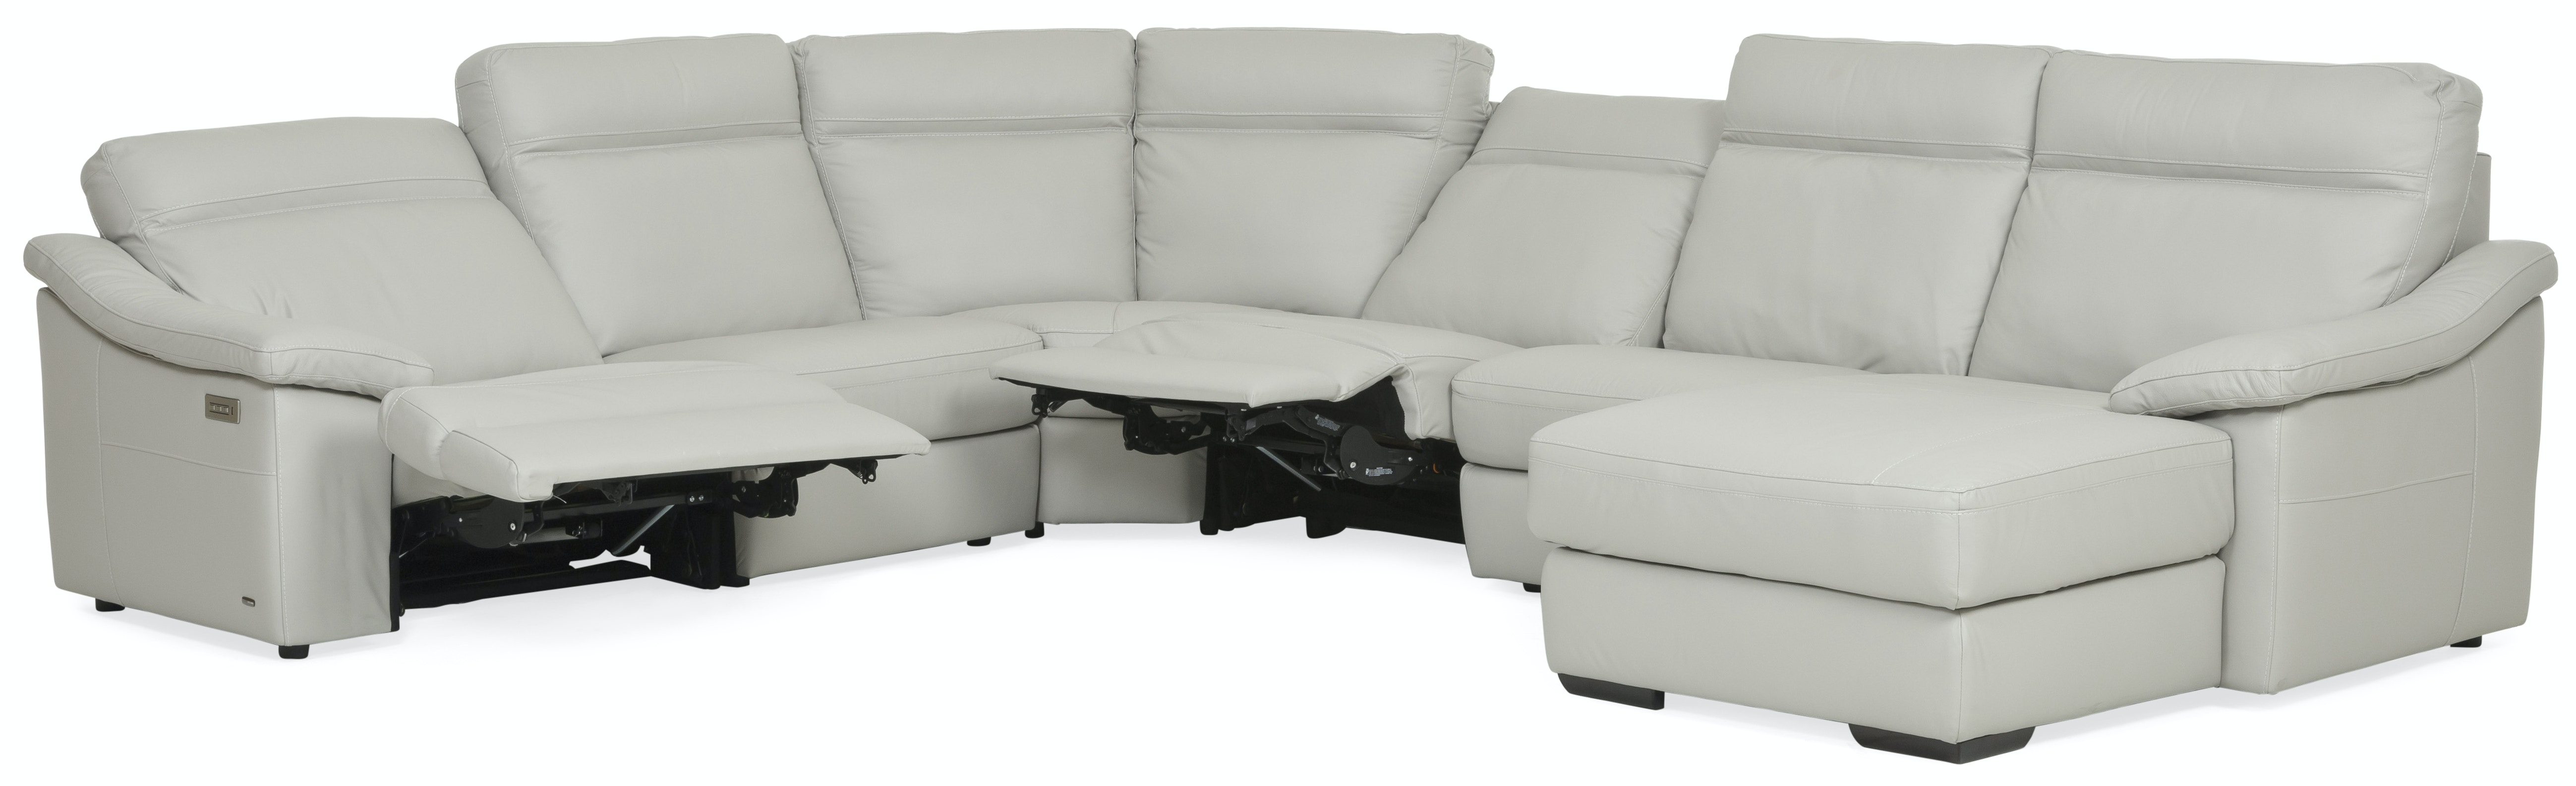 Urban Cement 6 Piece Power Reclining Leather Chaise Sectional (RAF) GP:M139